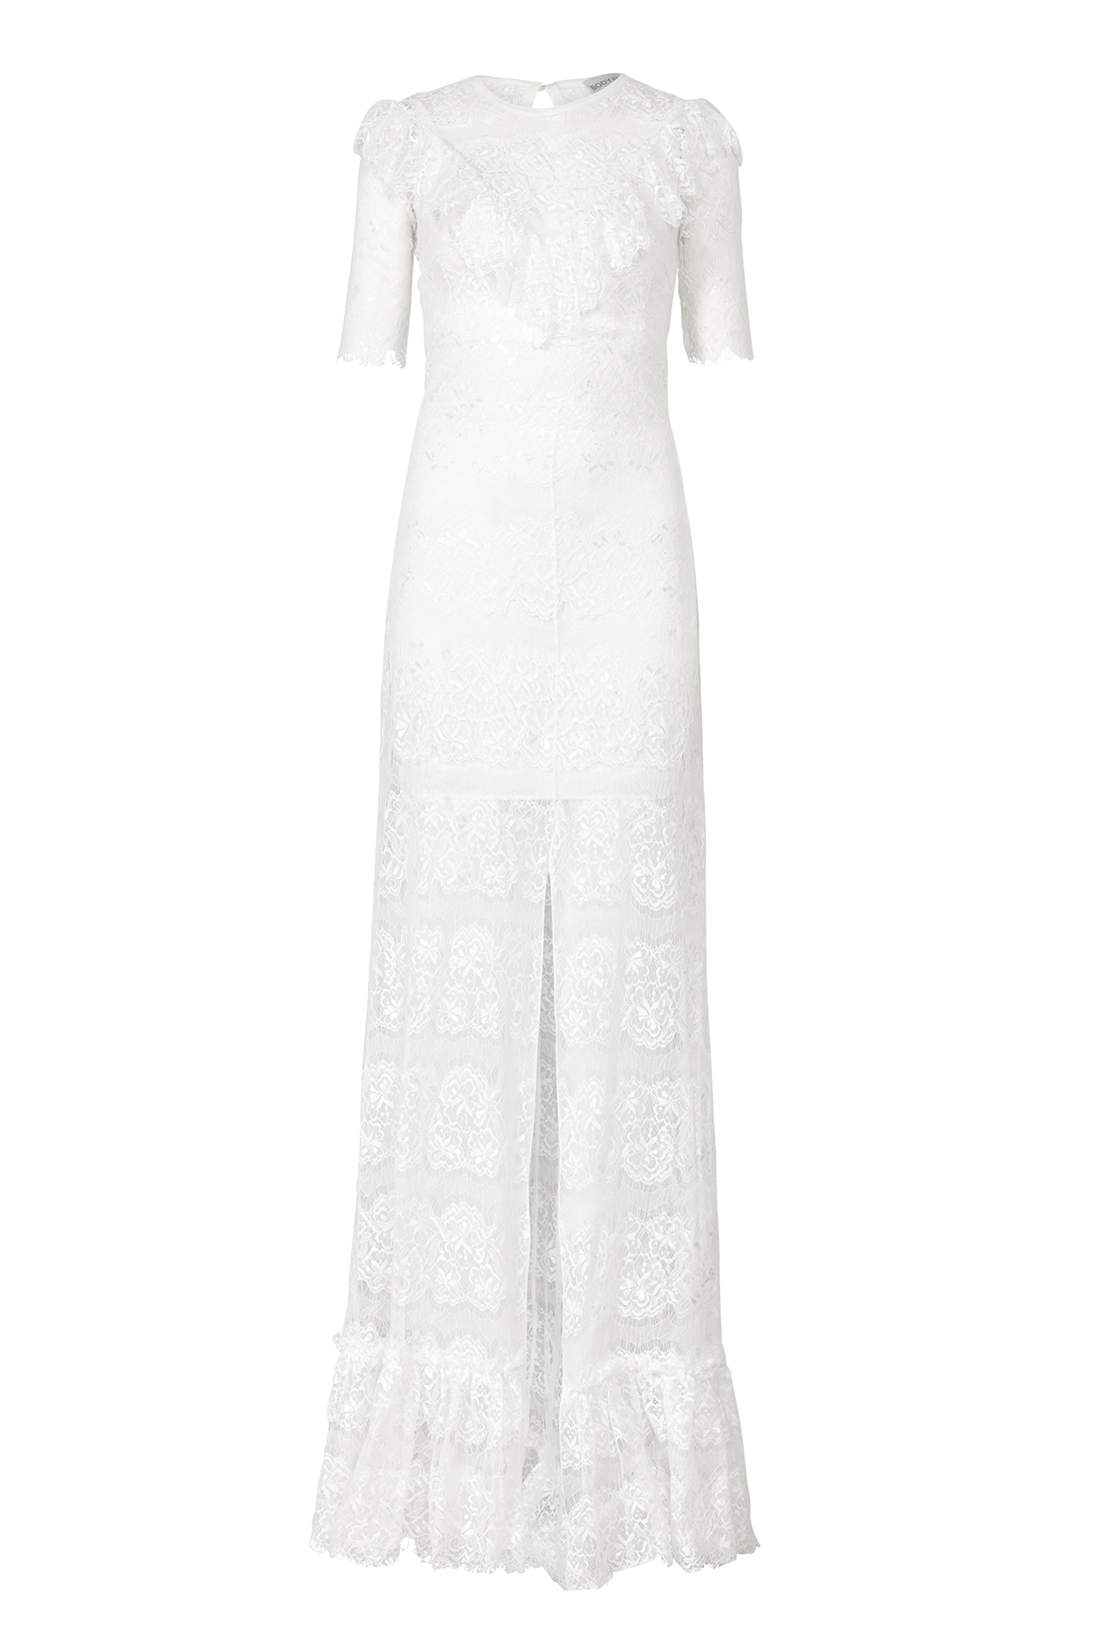 The Daisy Ivory by Body Frock front